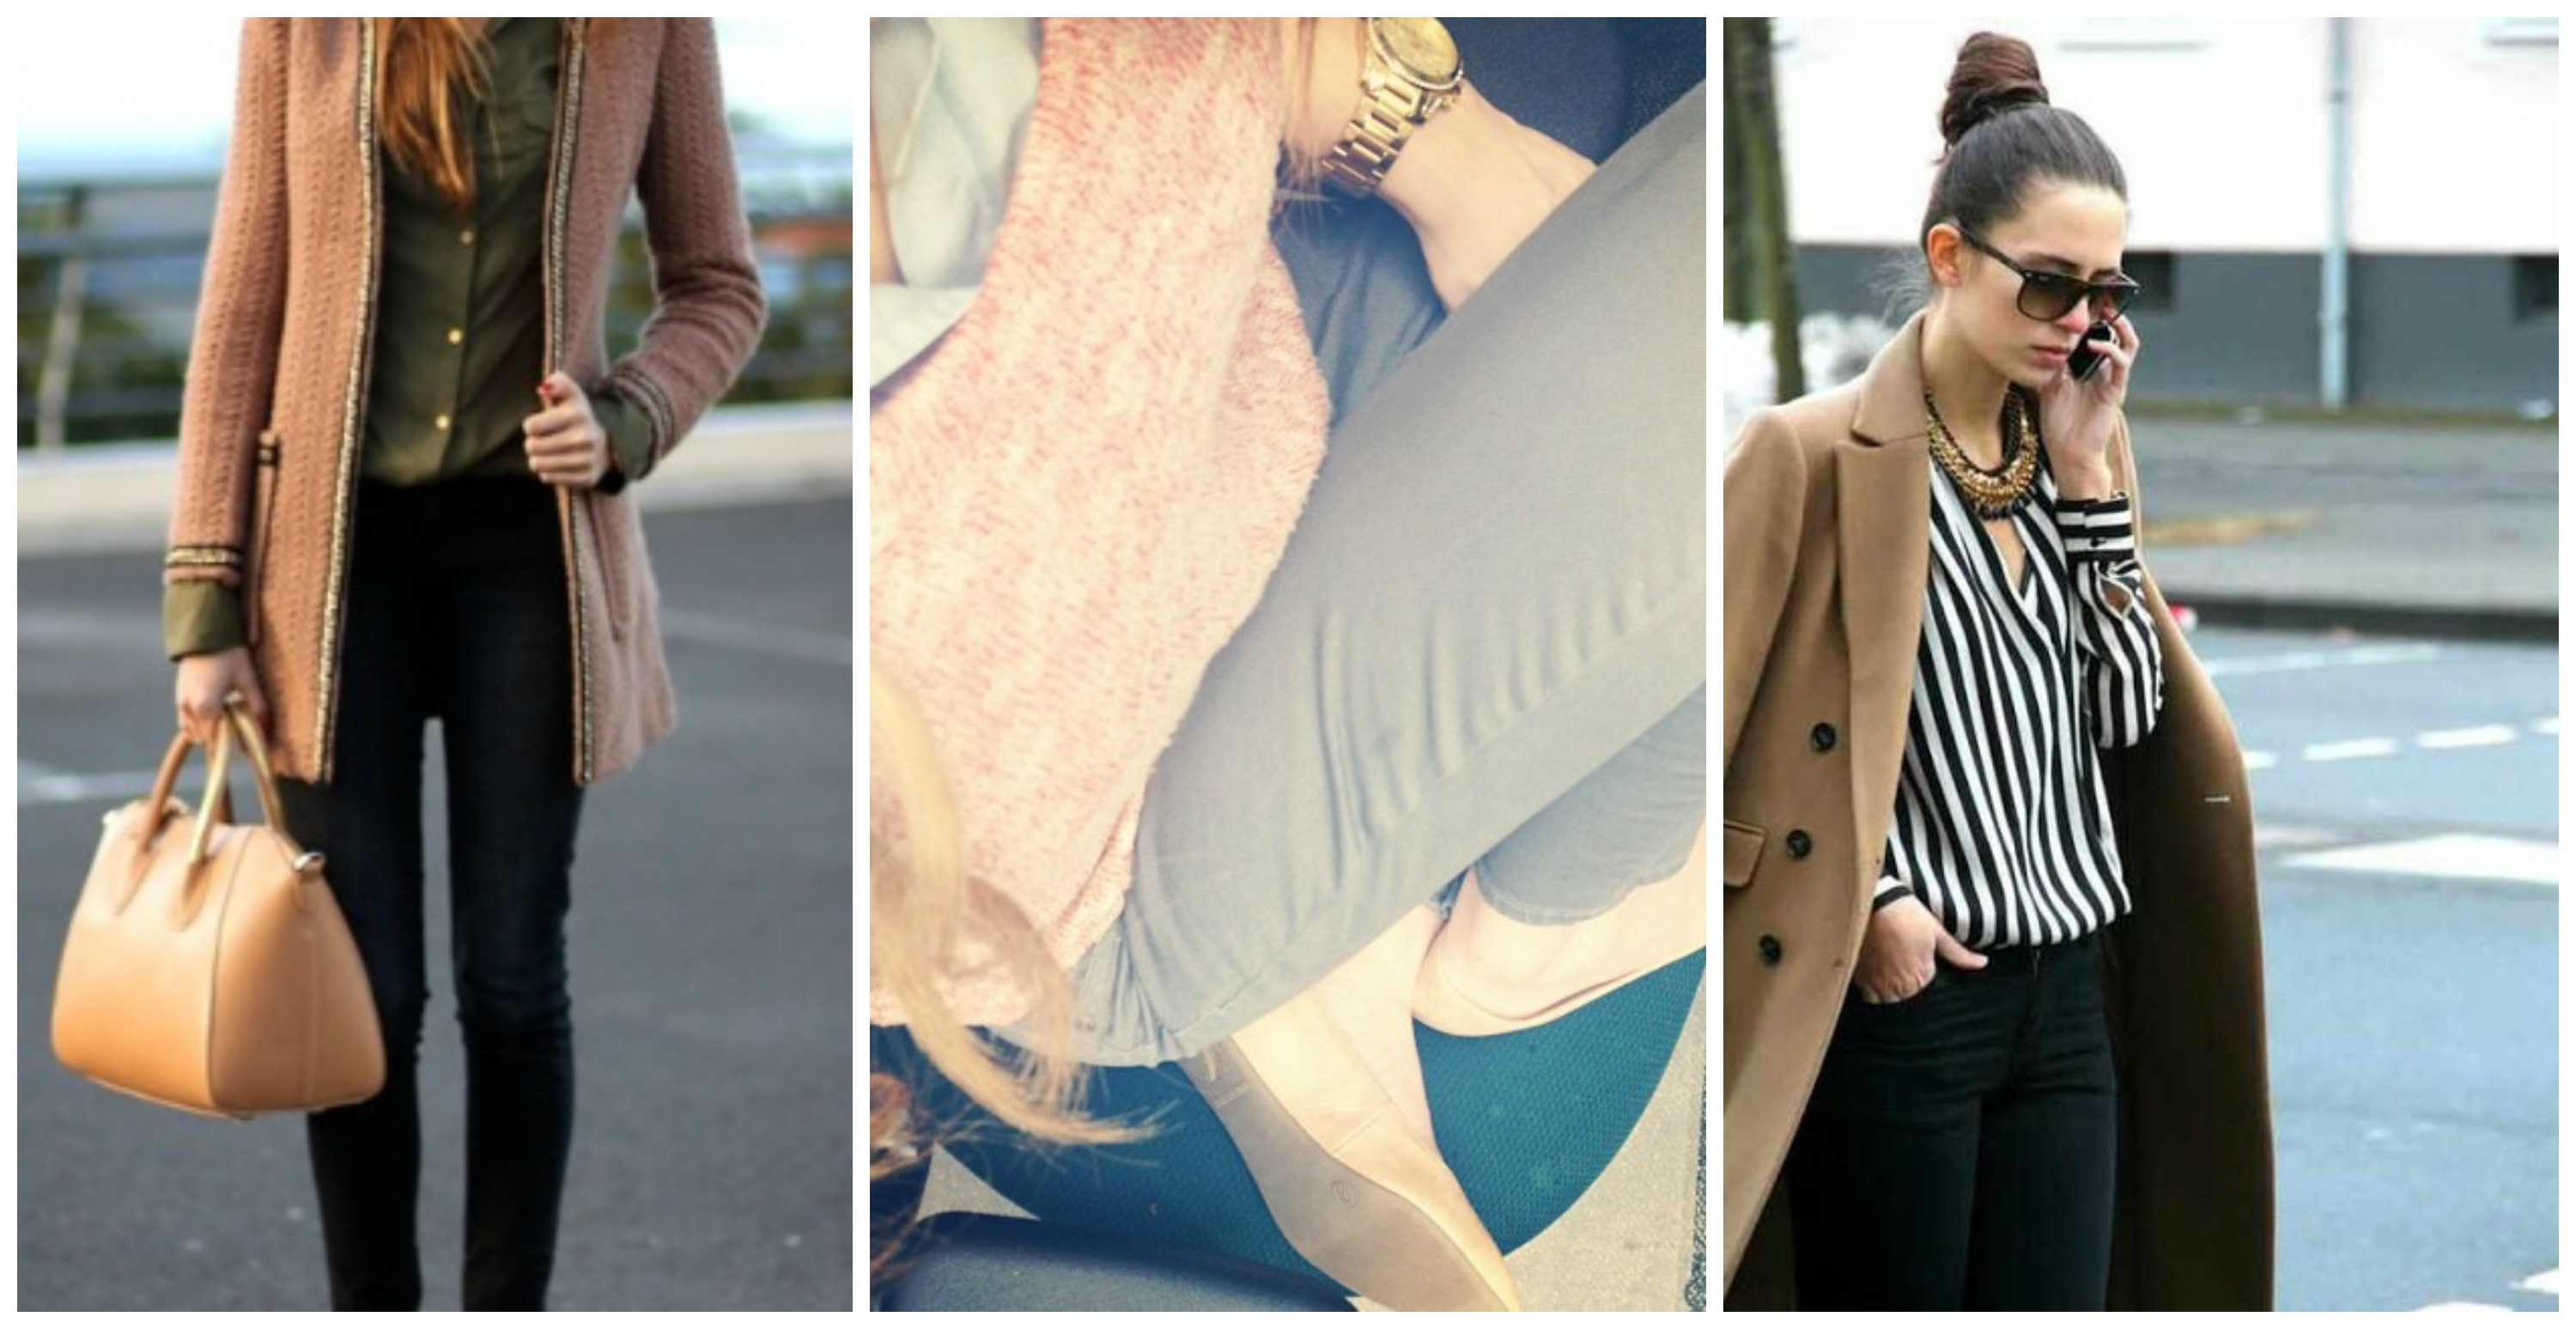 Smart Casual Outfit Ideas for Work - Outfit Ideas HQ